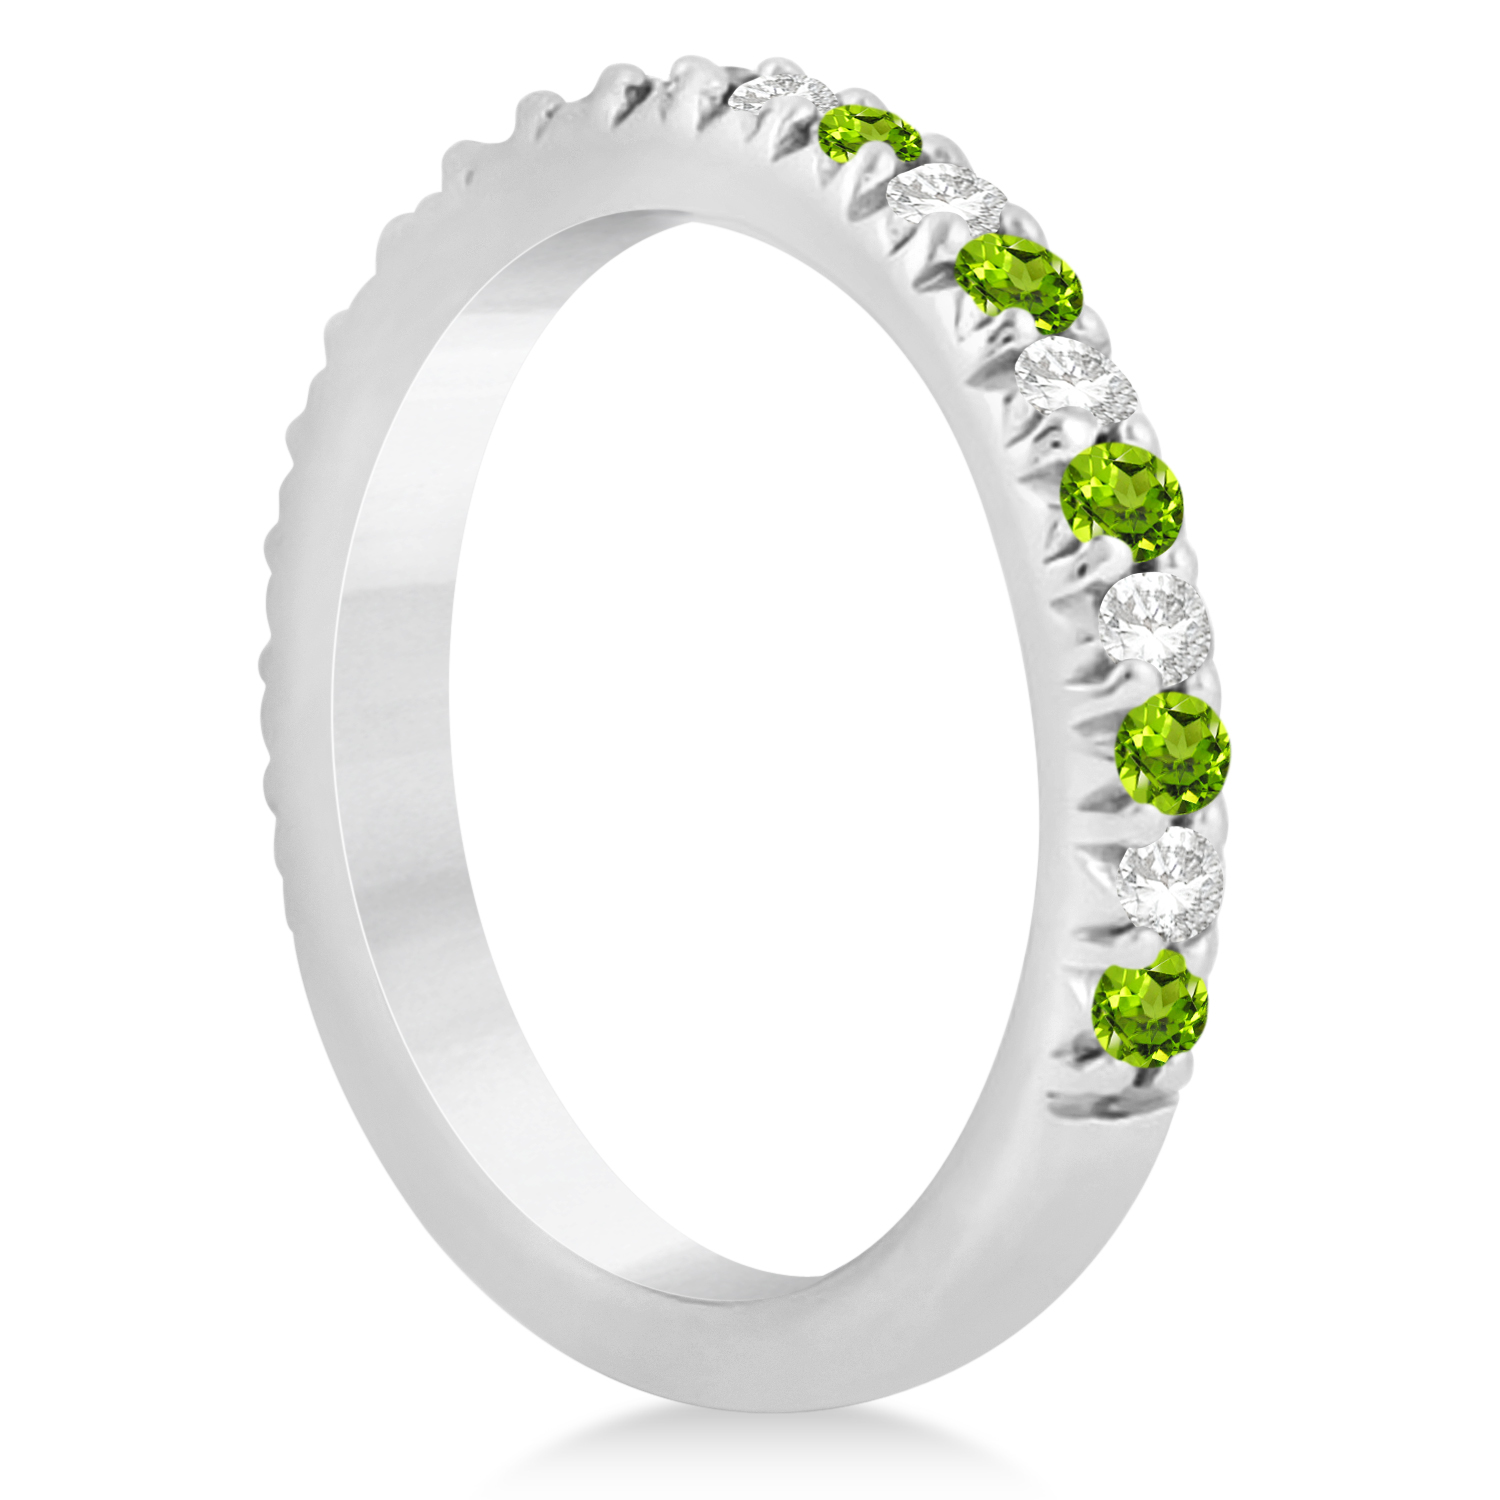 Peridot diamond bridal set setting 14k white gold 114ct for Peridot wedding ring set